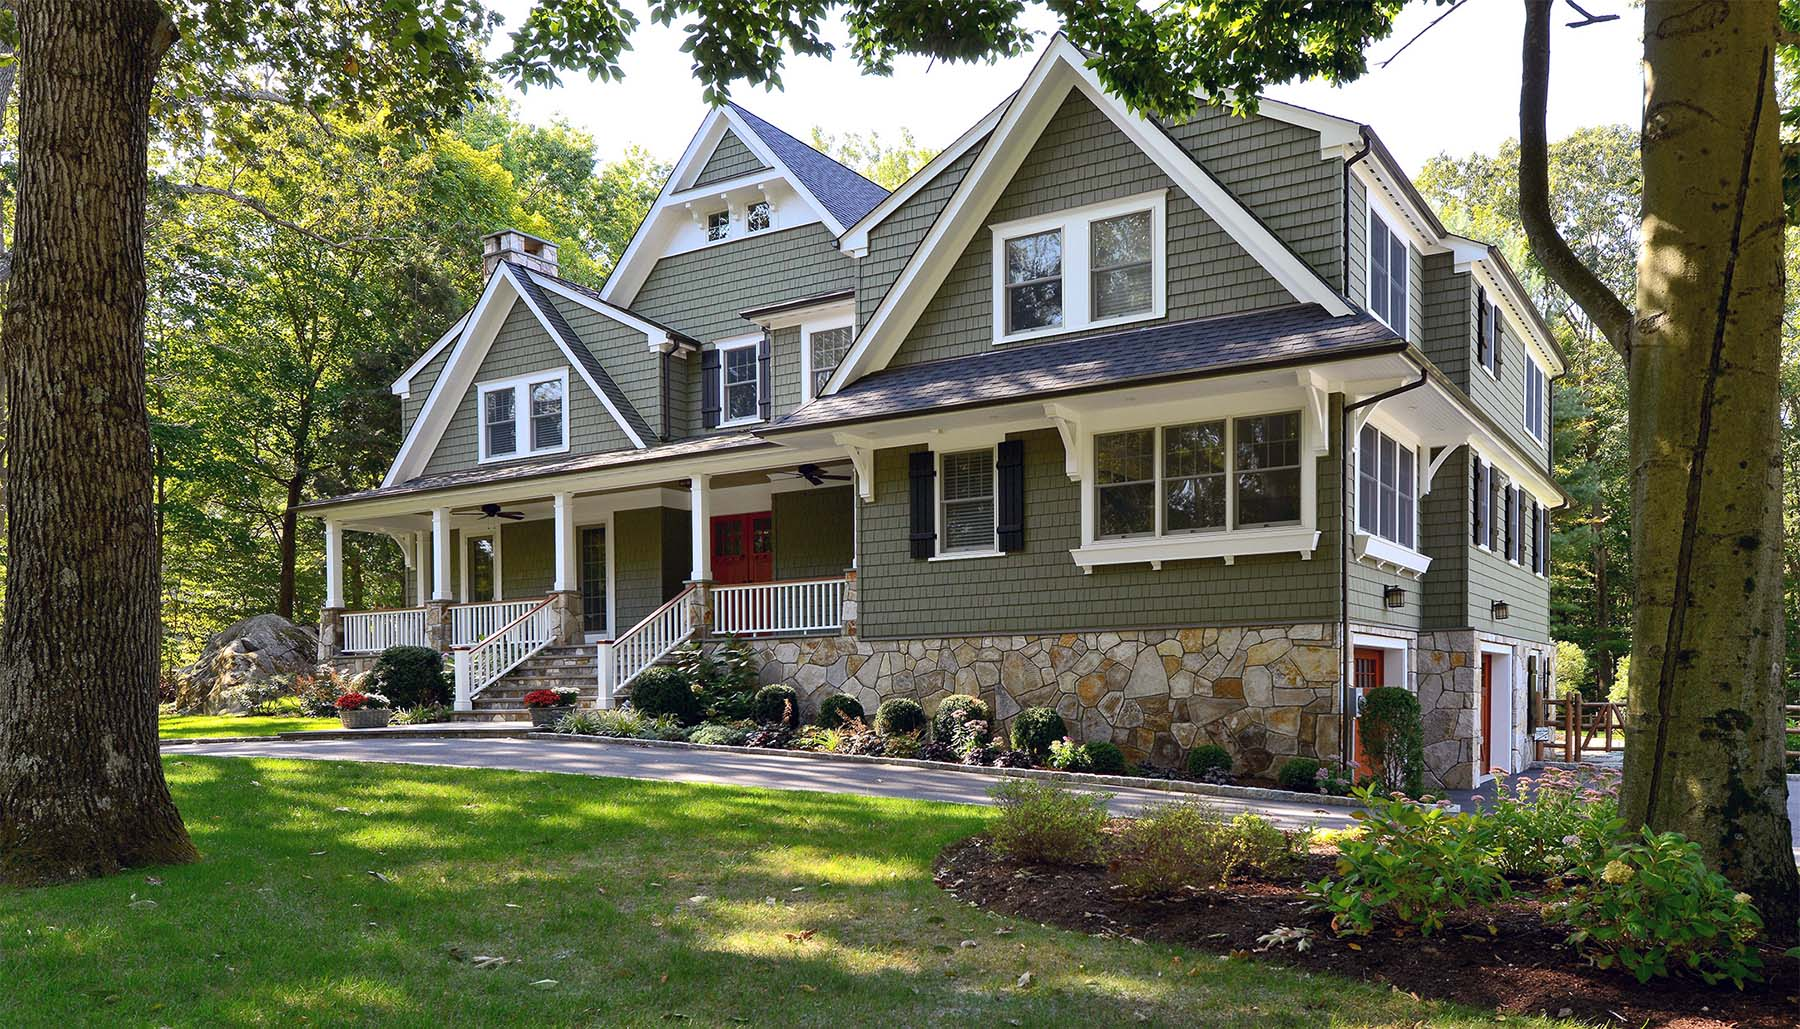 Fantastic custom home featuring green cedar shake siding with a red front door and lots of white trim.